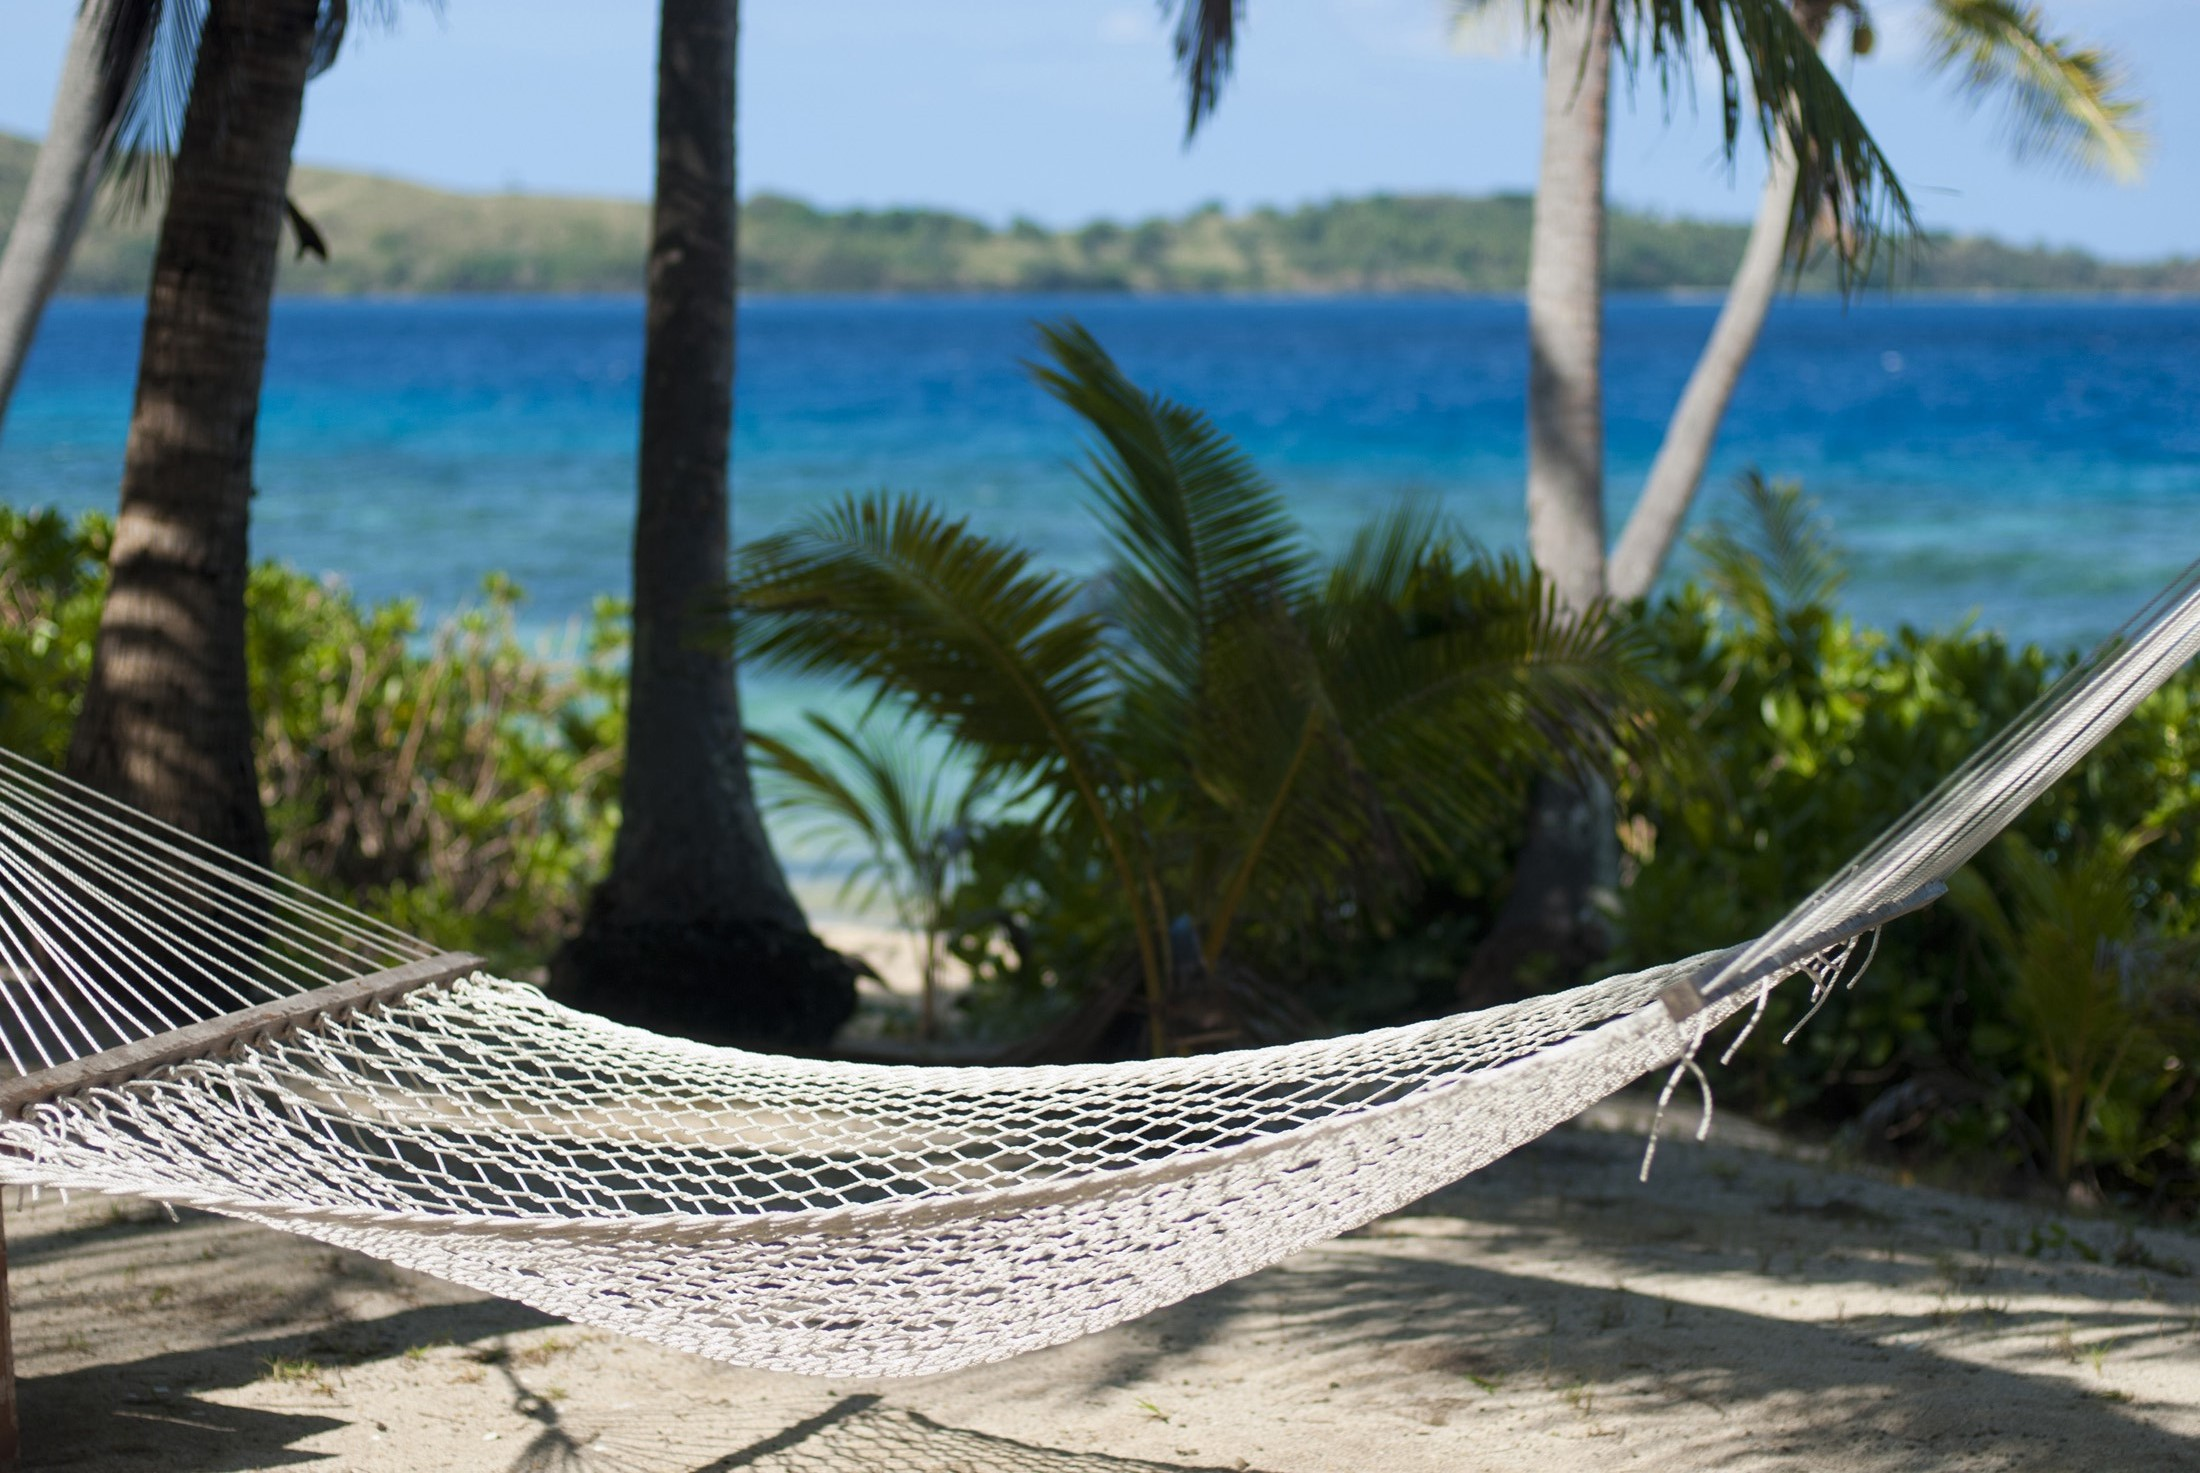 Beautiful scenic background of an empty hammock at a tropical beach overlooking the blue ocean